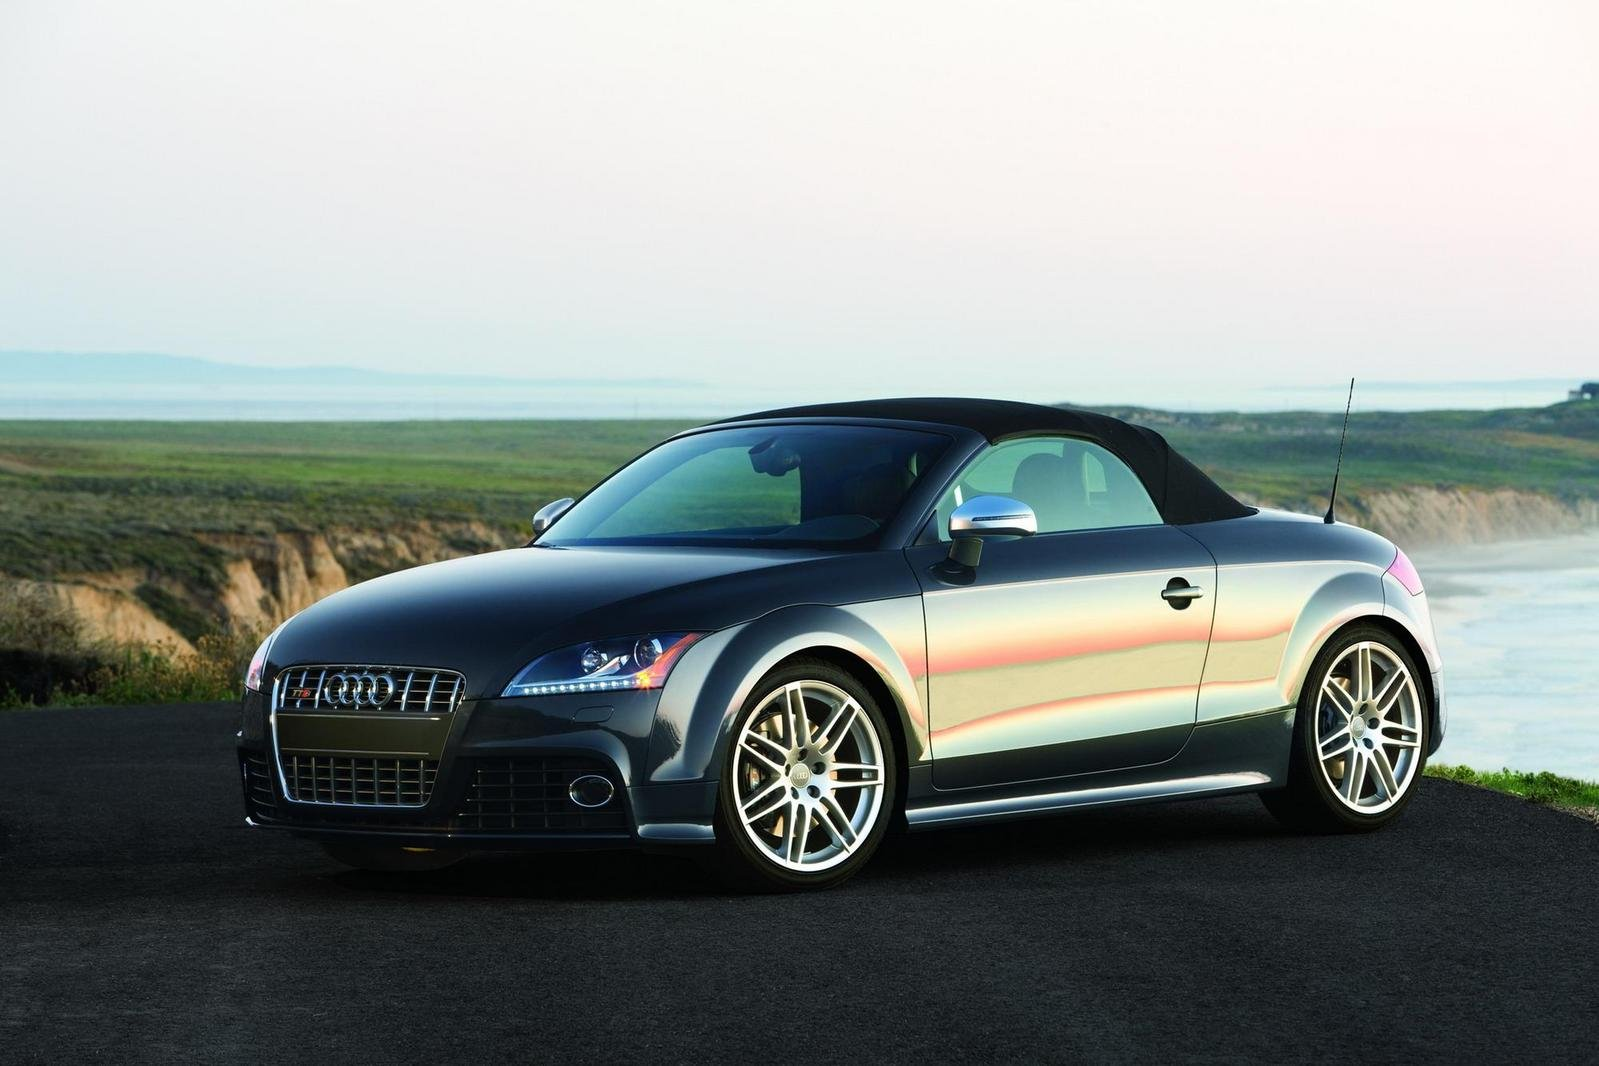 2010 audi tts picture 342116 car review top speed. Black Bedroom Furniture Sets. Home Design Ideas